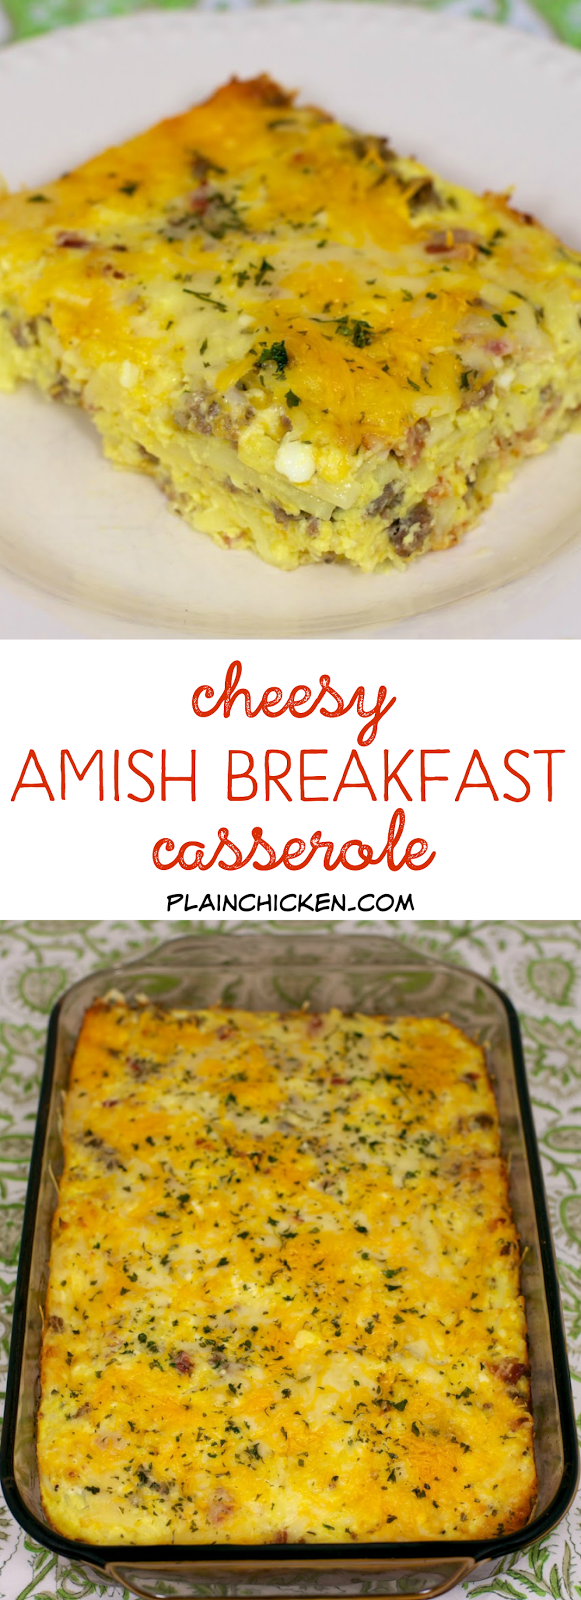 Exceptional Cheesy Amish Breakfast Casserole   Bacon, Sausage, Hash Browns, Eggs,  Cheddar Cheese